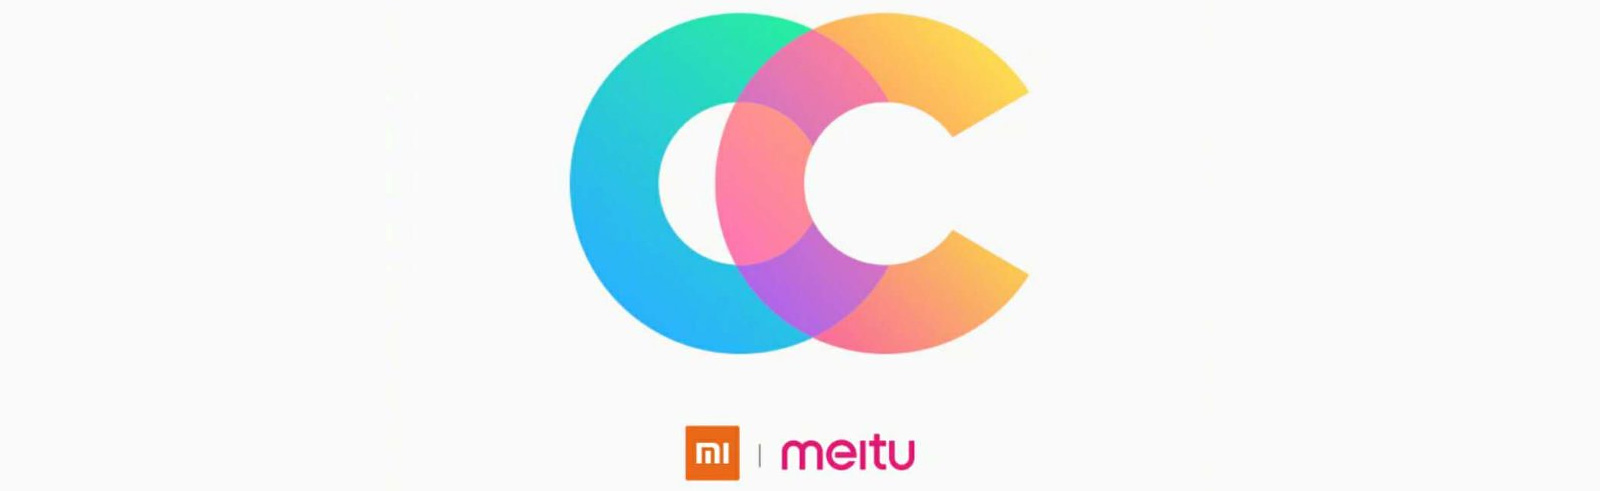 Xiaomi announces its Mi CC series of smartphones, no smartphone specs though